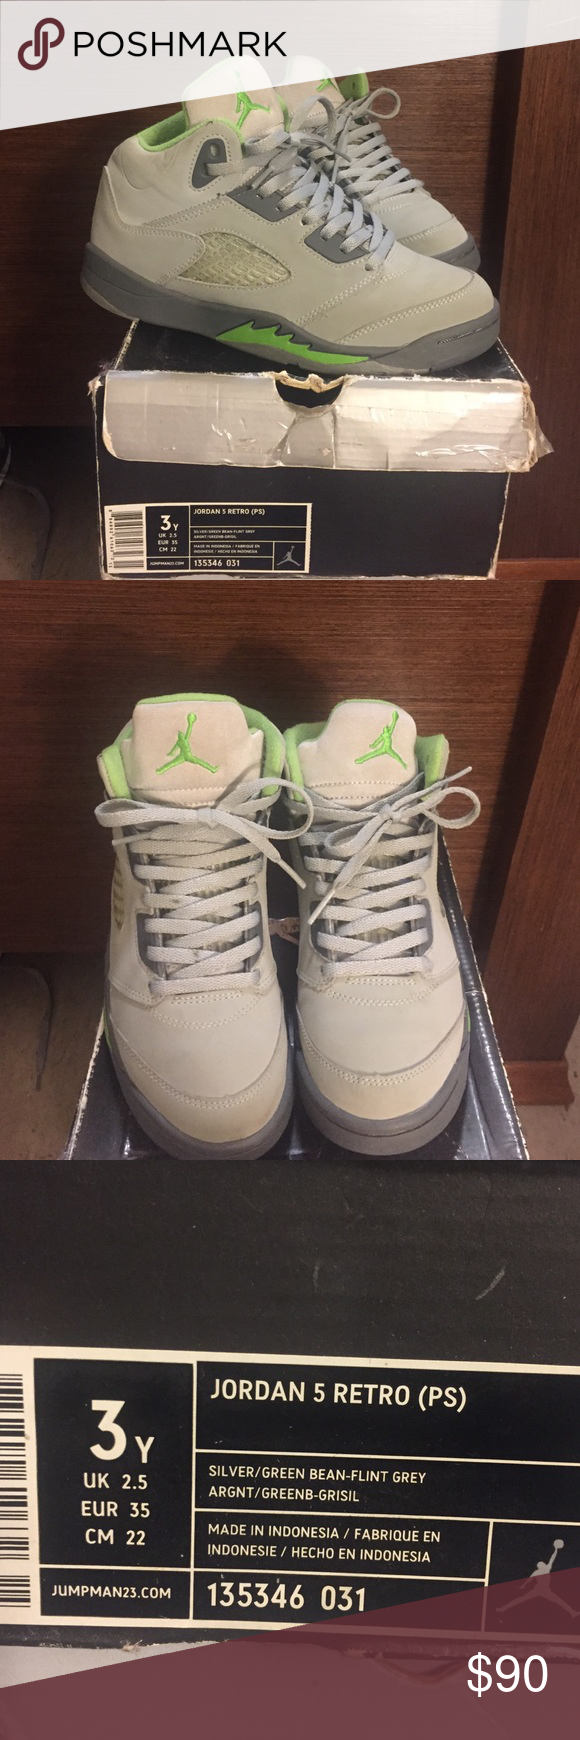 Jordan 5 Retro PS Size 3 (EUR Size 35) Jordan 5 Retro PS Size 3Y (EUR Size 35). Silver, Green, Flint Grey. I'm very good condition (bought these is 2006 when they first released). These are a classic, price is firm! Comes with original box. Also posted on MERCARI (TinyTarii). Jordan Shoes Sneakers